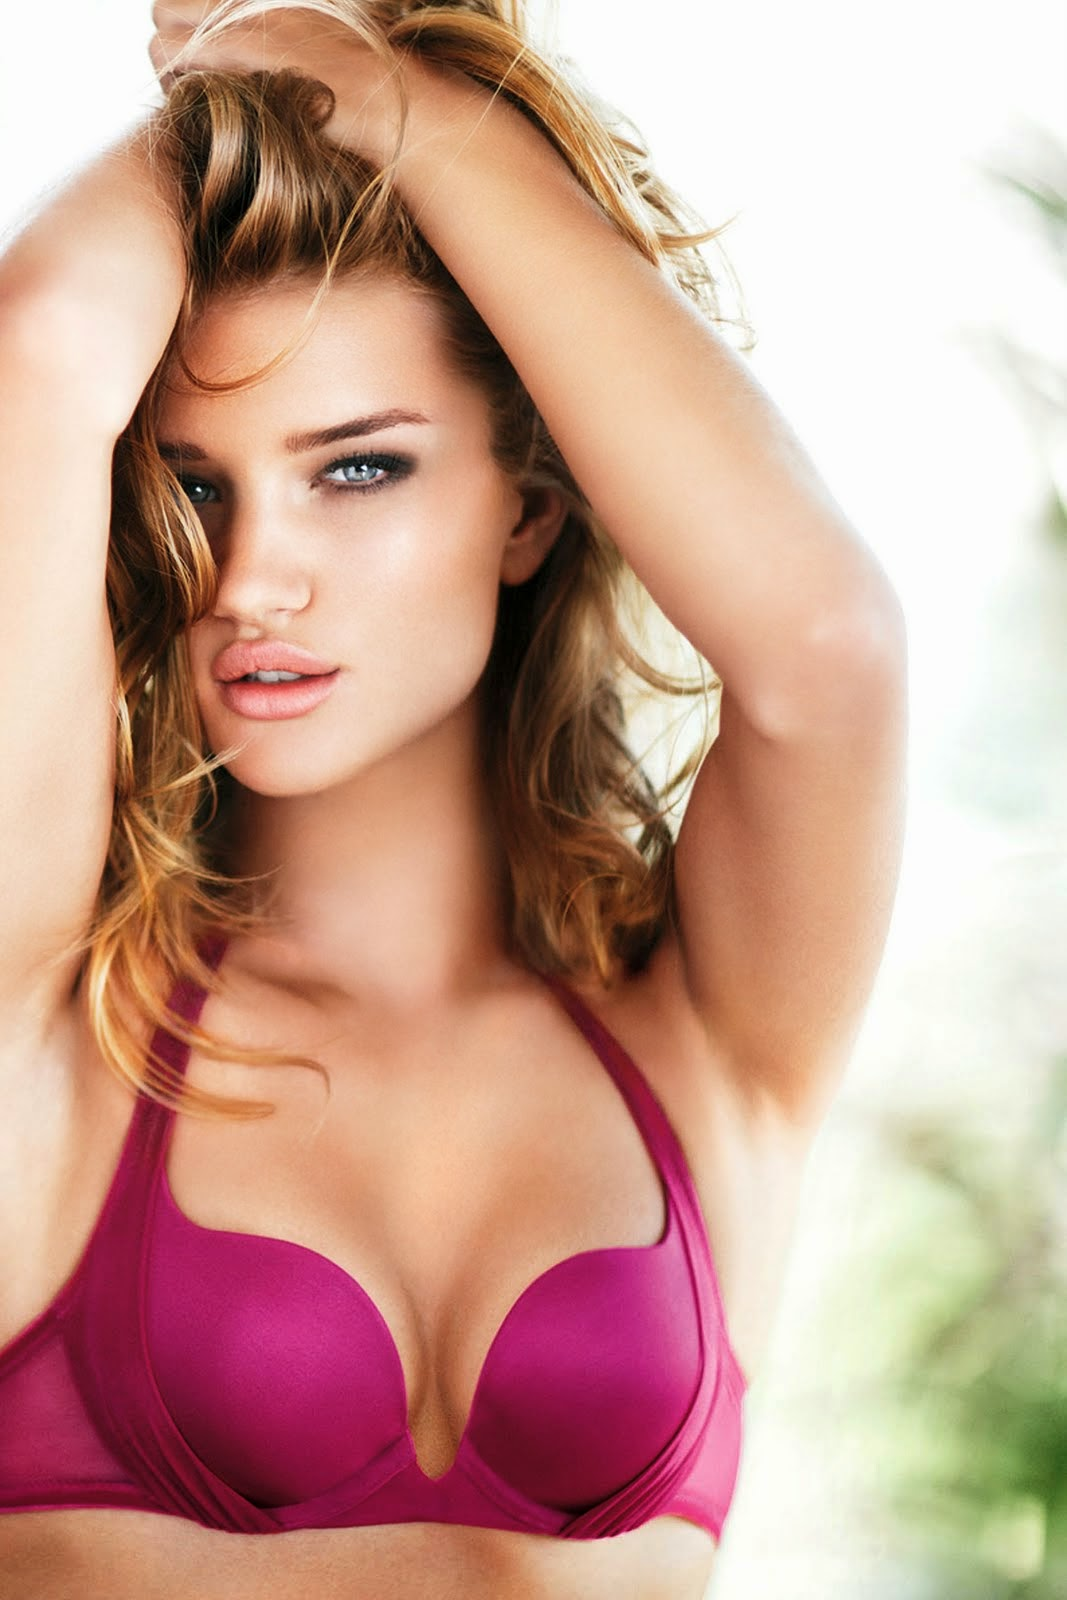 rosie%2Bhuntington whiteley%2Bsexy%2Blingerie%2BRosie%2BHuntington Whiteley%2Bsays%2Bthe%2Bsecret%2Bof%2Bbeing%2Bsexy%2Bis%2Bconfidence%2Band%2Ba%2Bgreat%2Bbra%2Bhot%2Bnude%2Bnaked%2Btopless%2Bpussy%2Bhollywood%2Binfo%2Bnow Top quality adult sex toys, 6 2/3 New boy Muti speed soft G Spot vibrator, ...